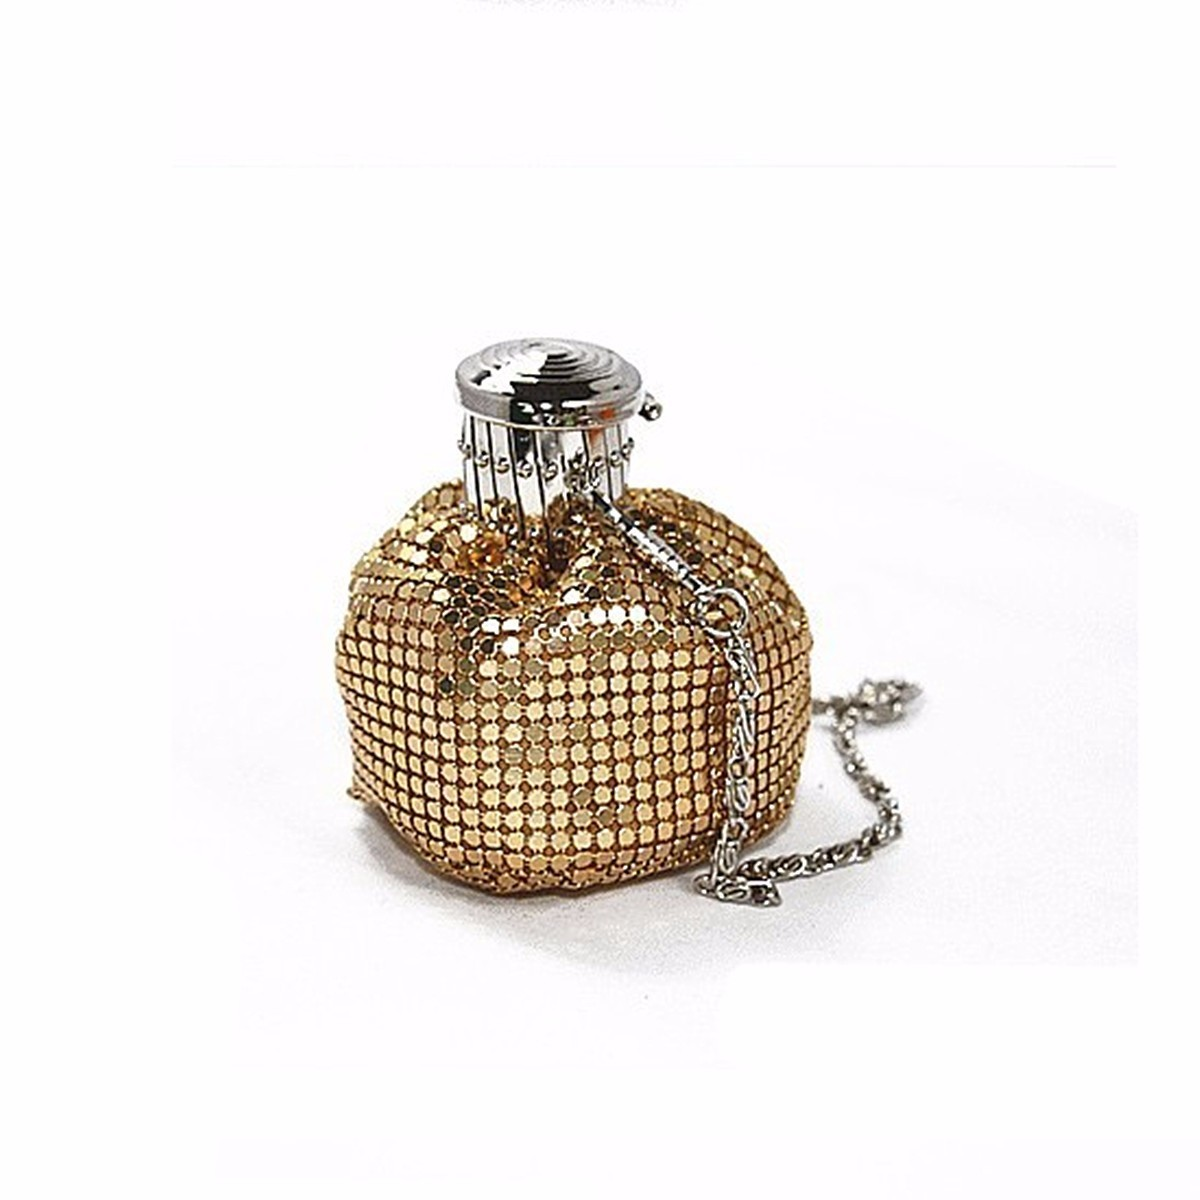 Ulasan Mengenai Lady Bucket Handbag Mini Aluminium Shoulder Bag Evening Pesta Bling Clutch Dompet Emas Intl